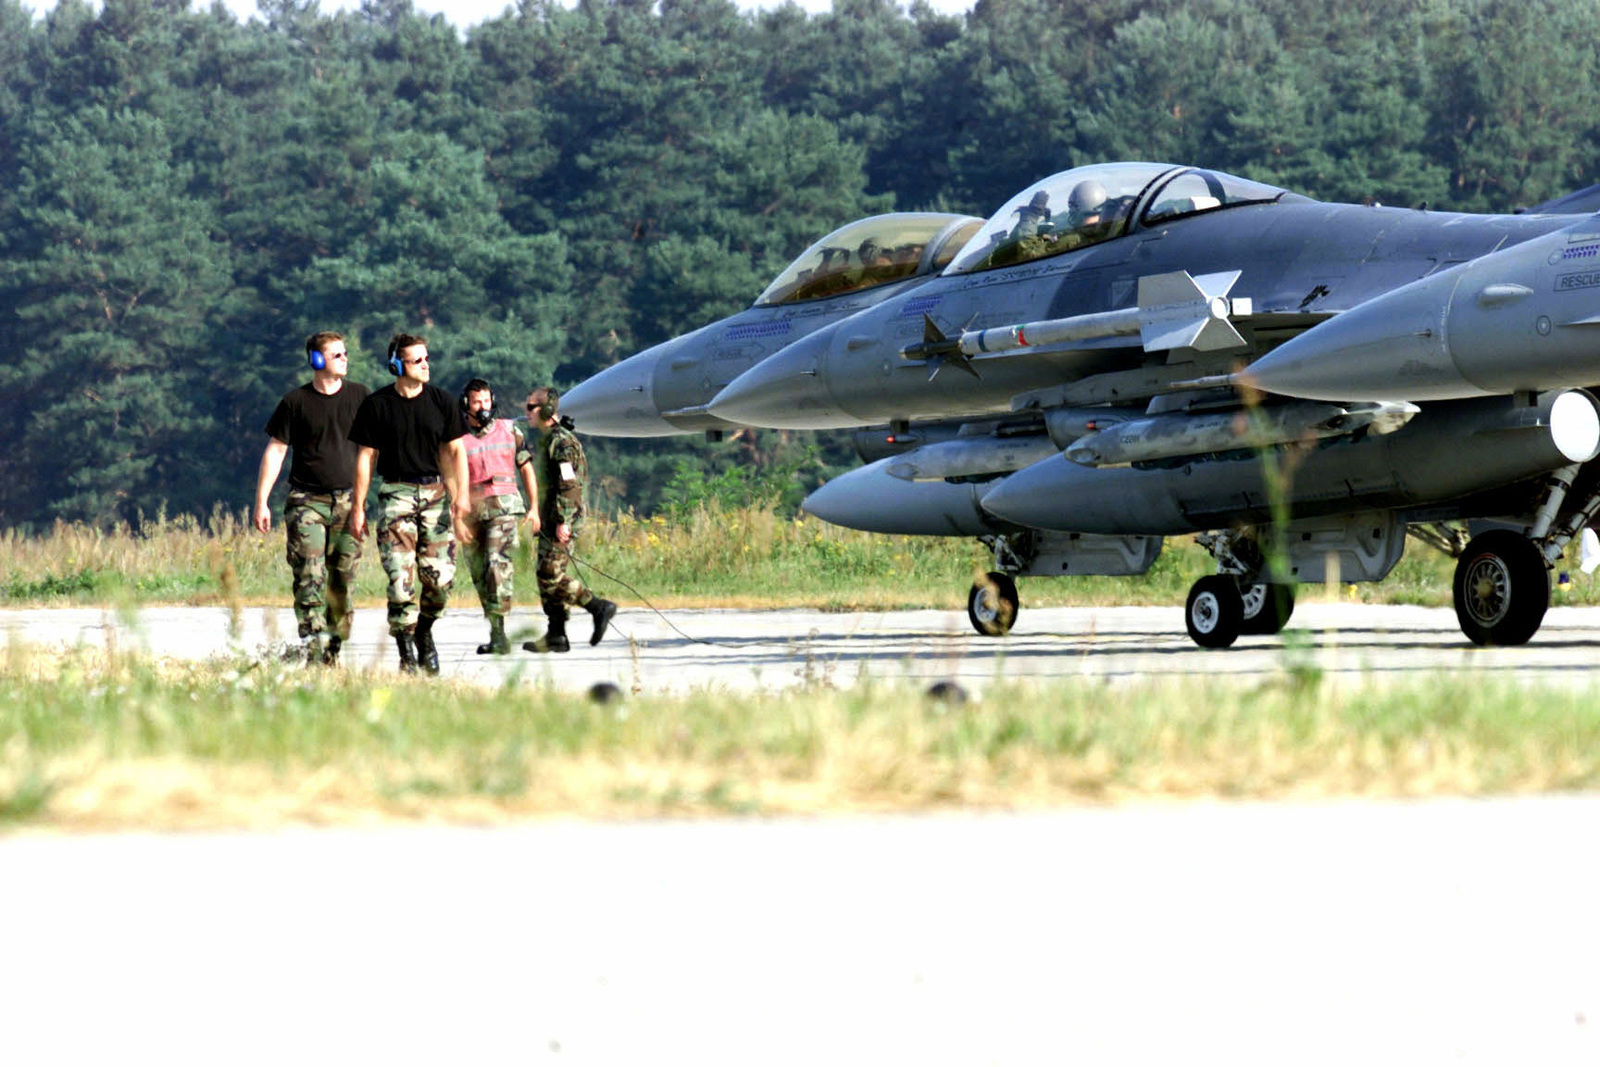 United States Air Force personnel, 510th Fighter Squadron, 31st Fighter Wing, deployed from Aviano Air Base, Italy, walk the line as they prepare to arm the next F-16C Fighting Falcon before it is launched for the day's first sortie. Training Exercise Iron Claw, Kuchyna AB, Slovakia, 11 September 2000